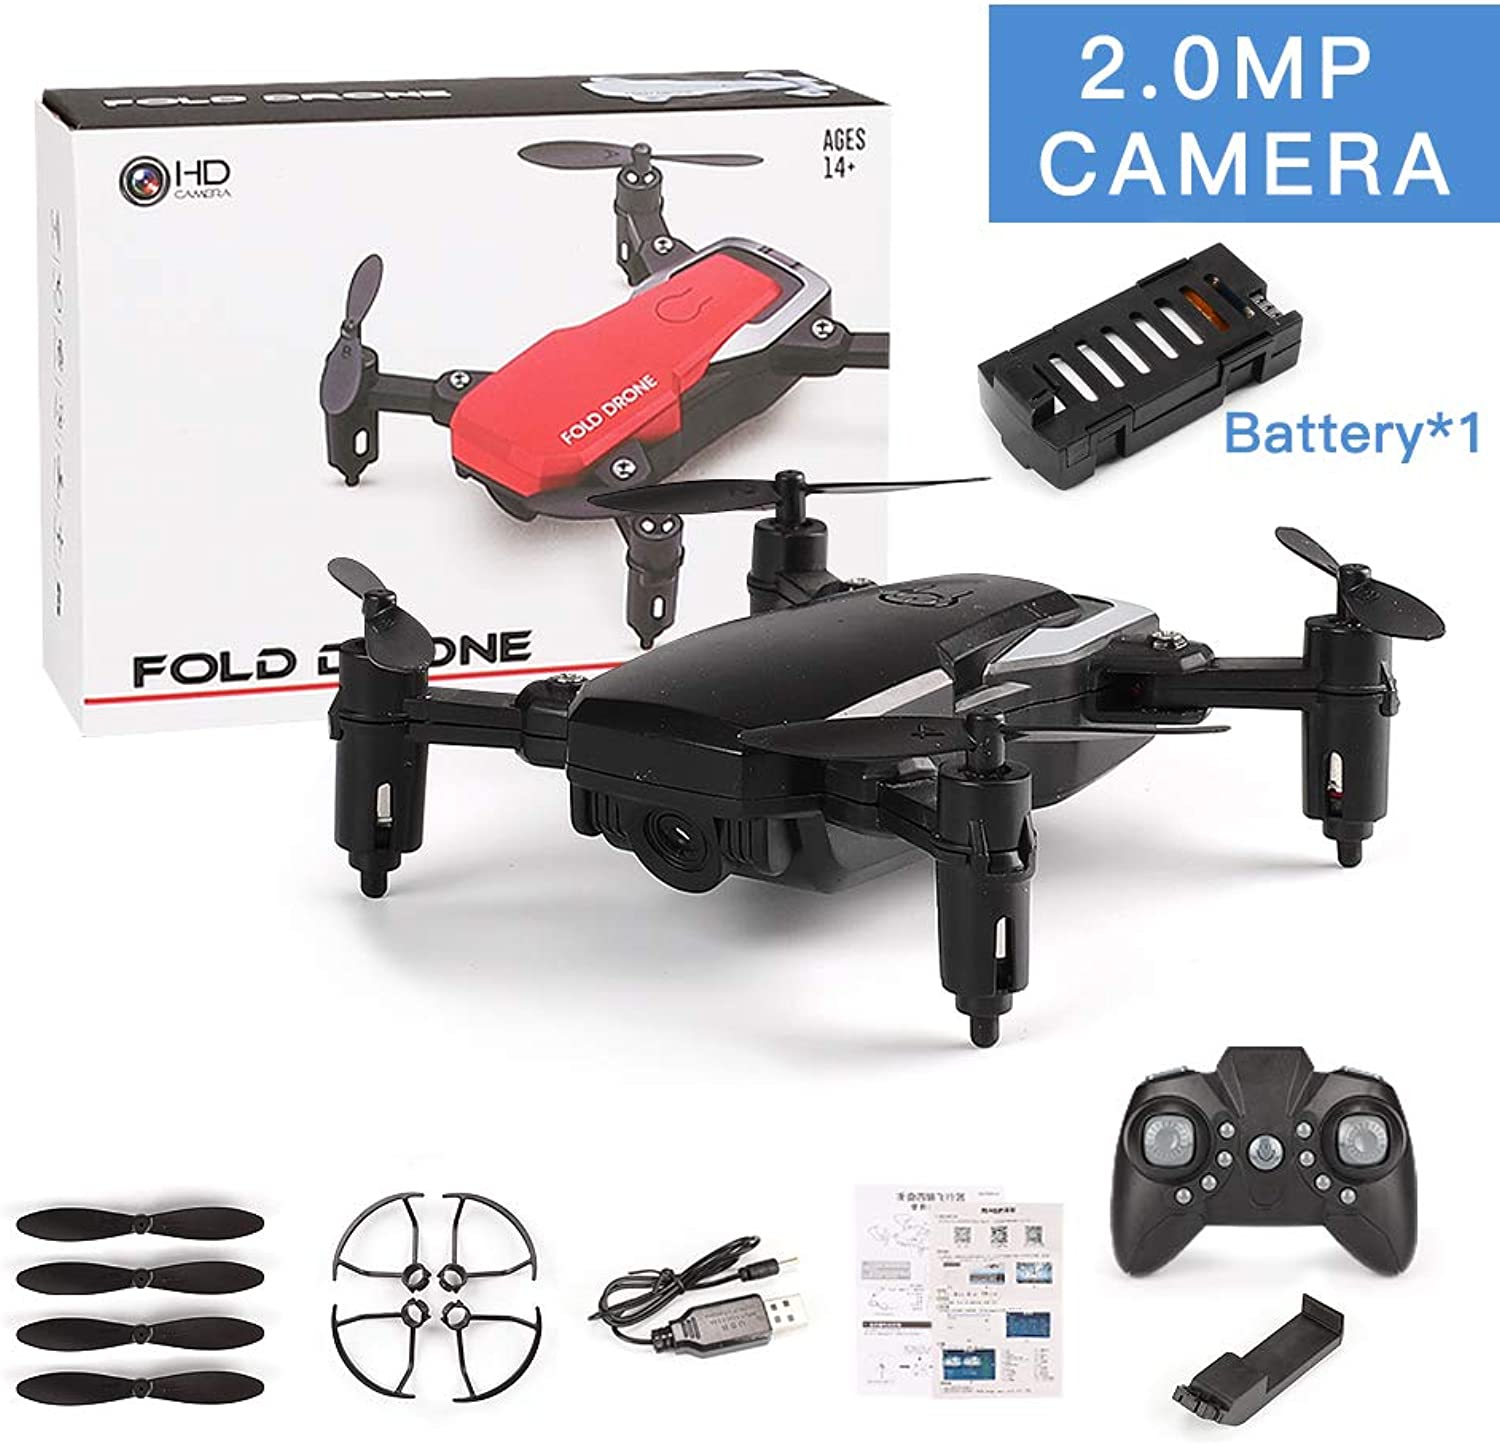 Ocamo SG800 Mini Drone with Camera Altitude Hold RC Drones with Camera HD WiFi FPV Quadcopter Dron RC Helicopter VS Z1, JDRC JD-16, HDRC D2, SM M1 2.0MP Camera WiFi Black